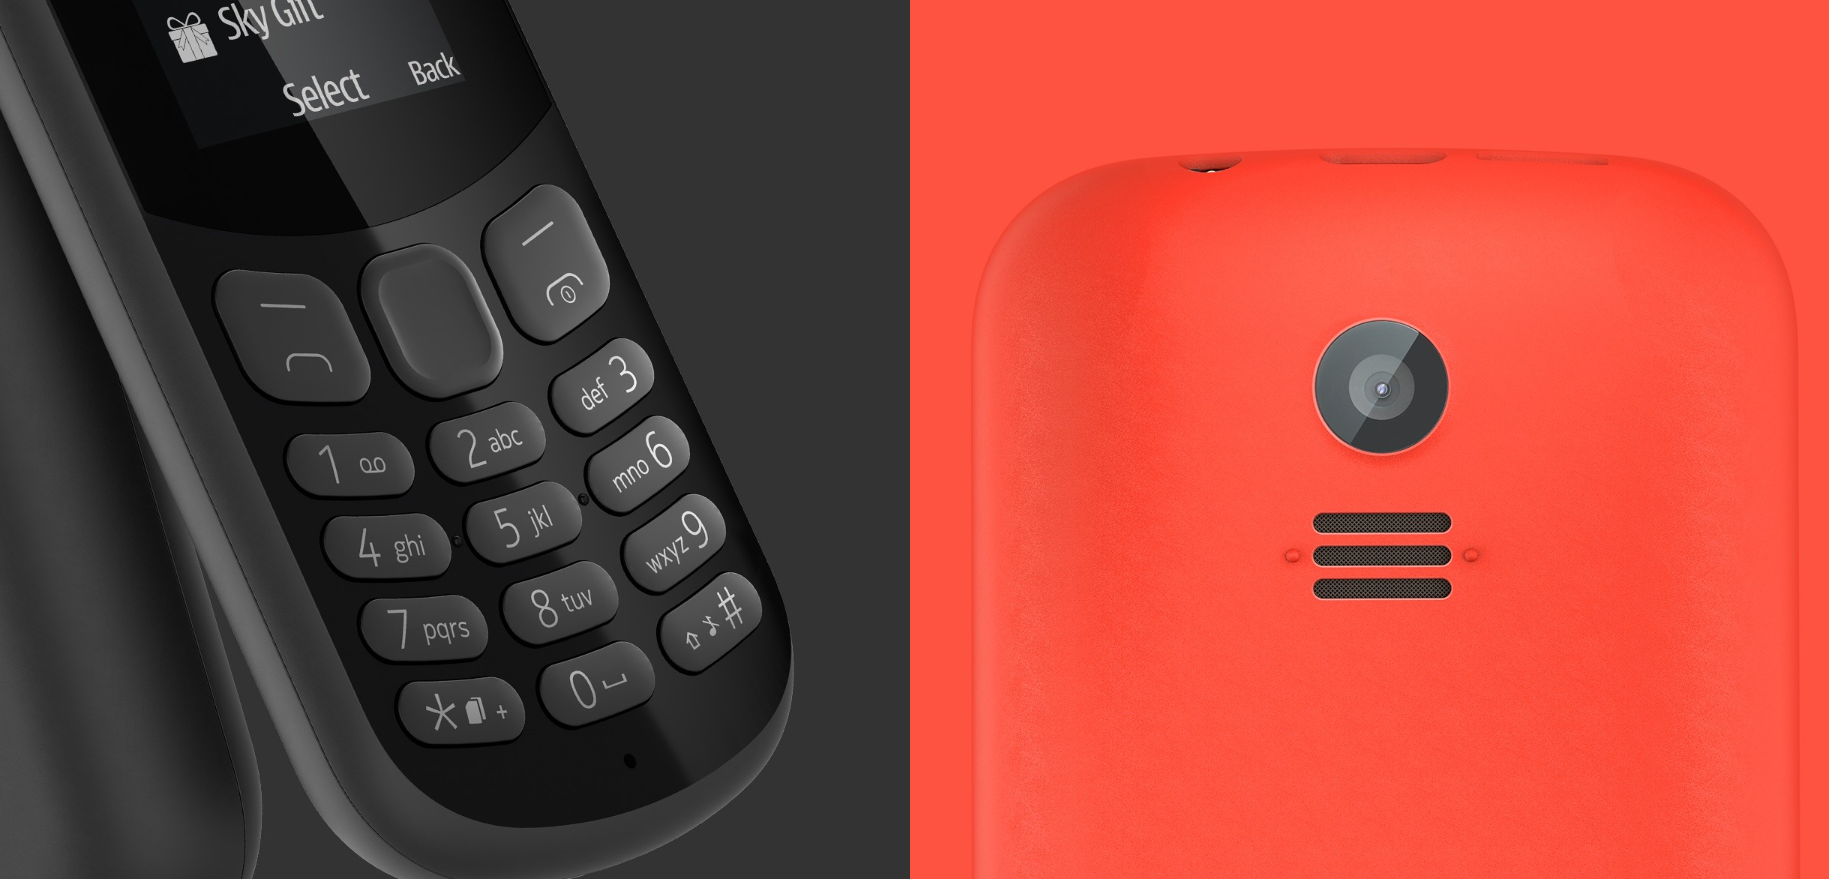 Official: The all new #Nokia 105 and Nokia 130 announced | Nokiamob